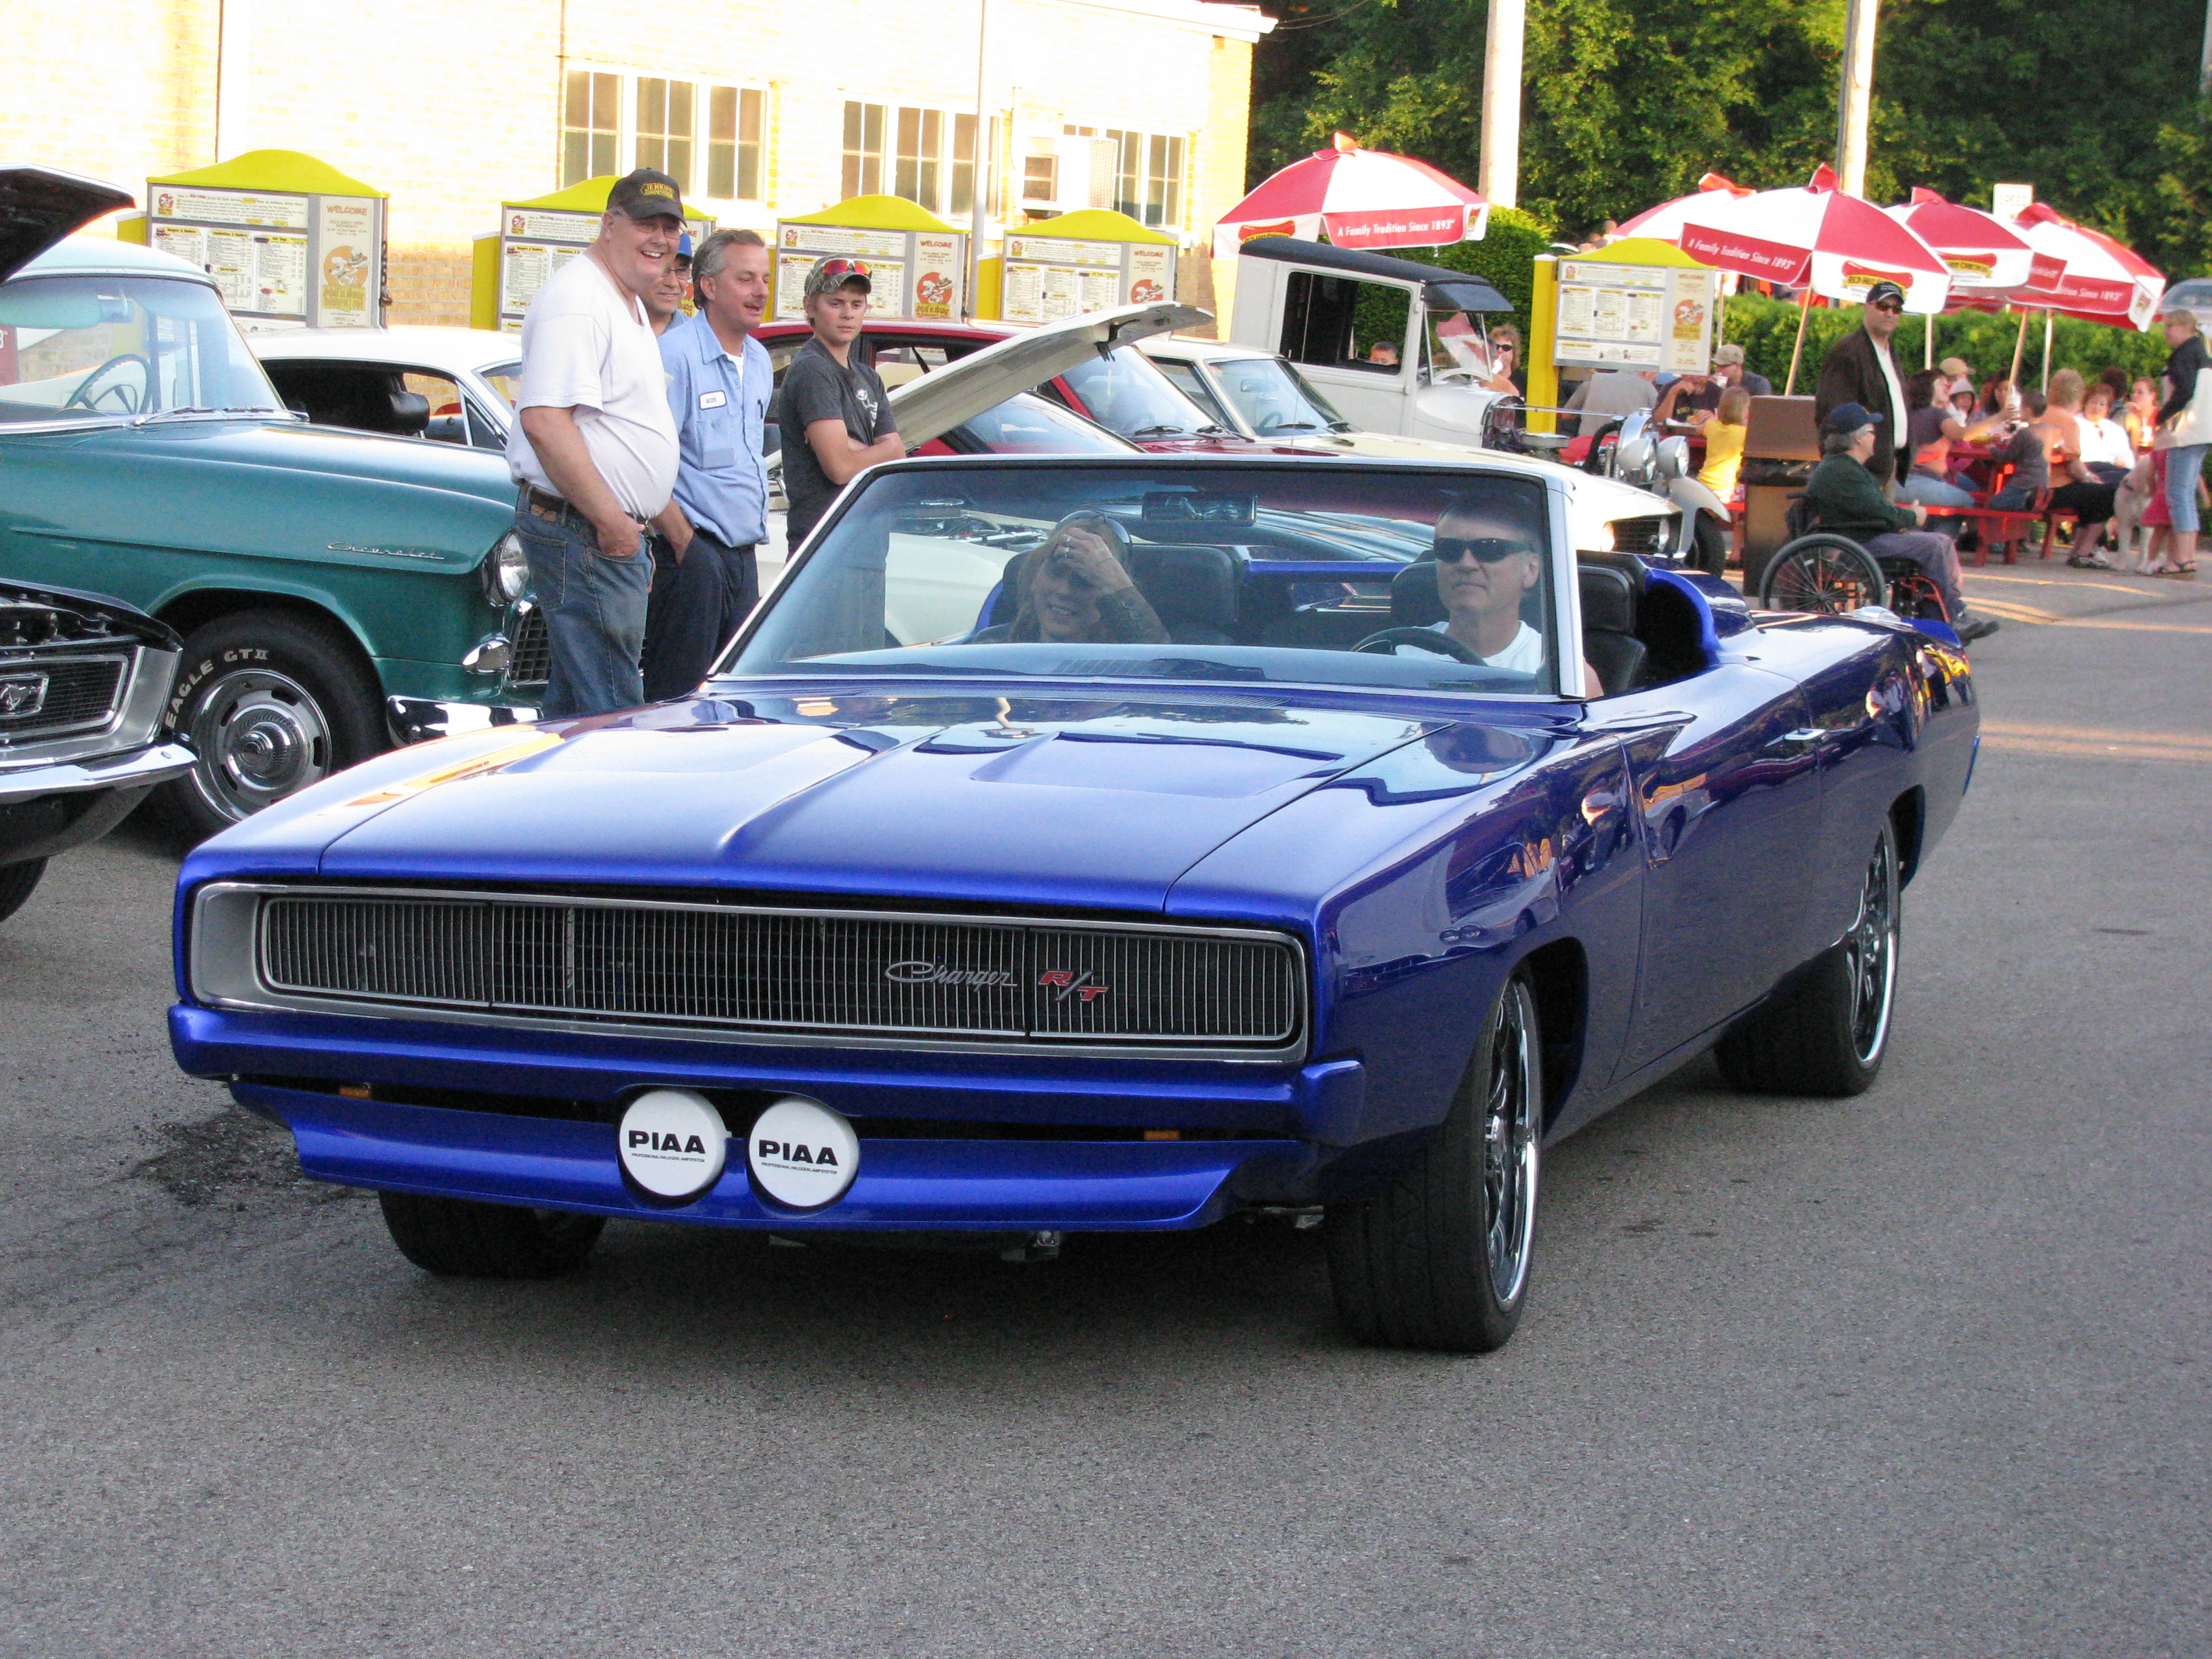 Dodge Charger Photographs - The Crittenden Automotive Library